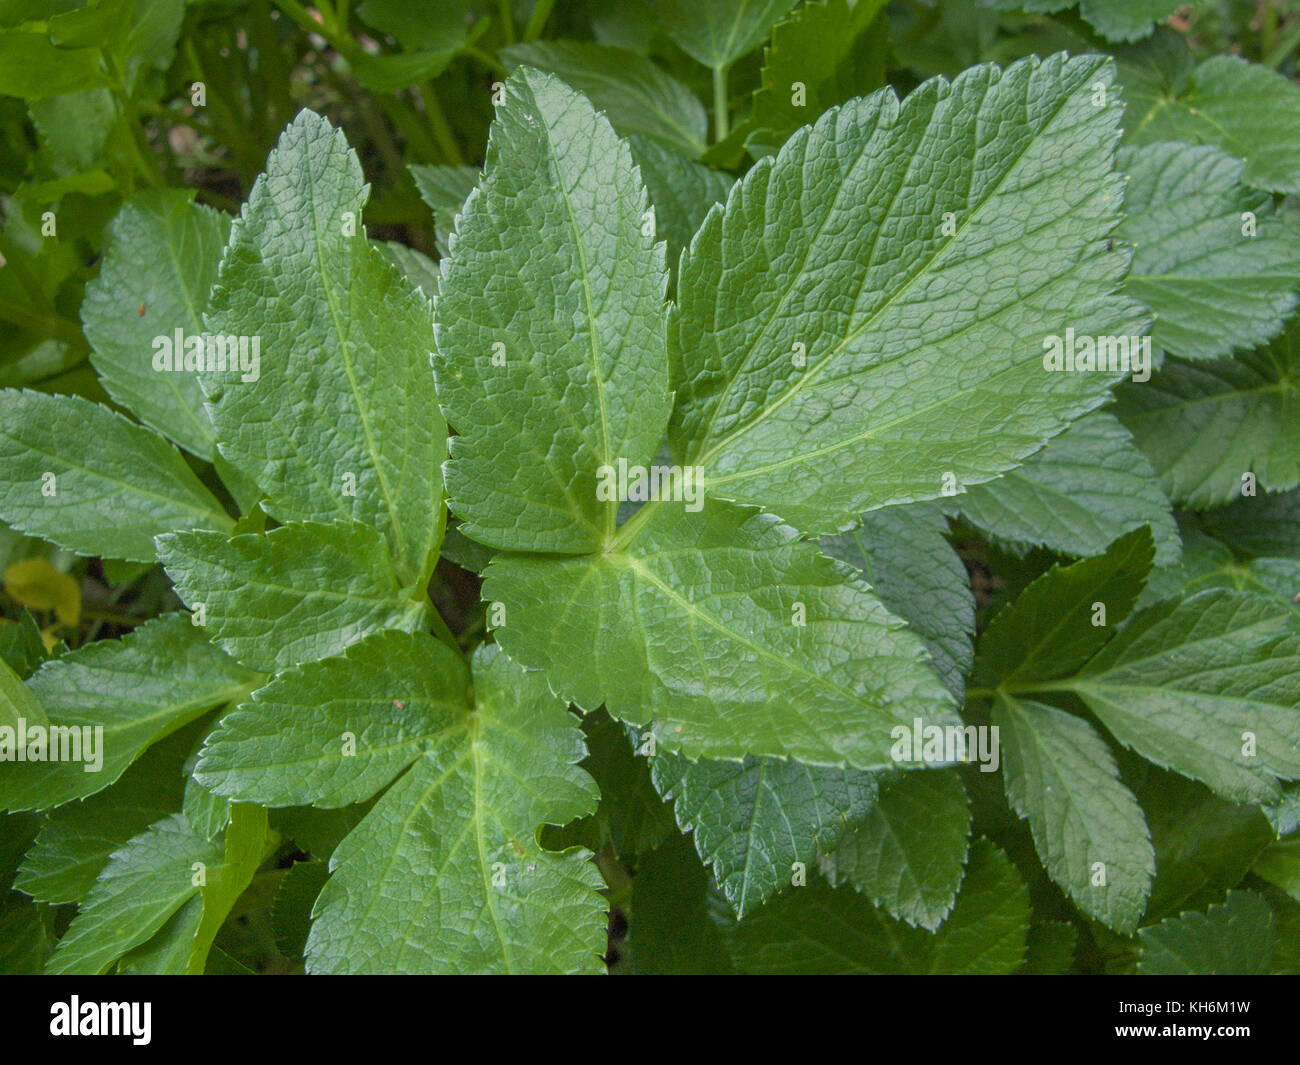 Alexanders (Smyrnium olusatrum) - a biennial plant which is foraged for its leaves and roots which may be eaten - Stock Image